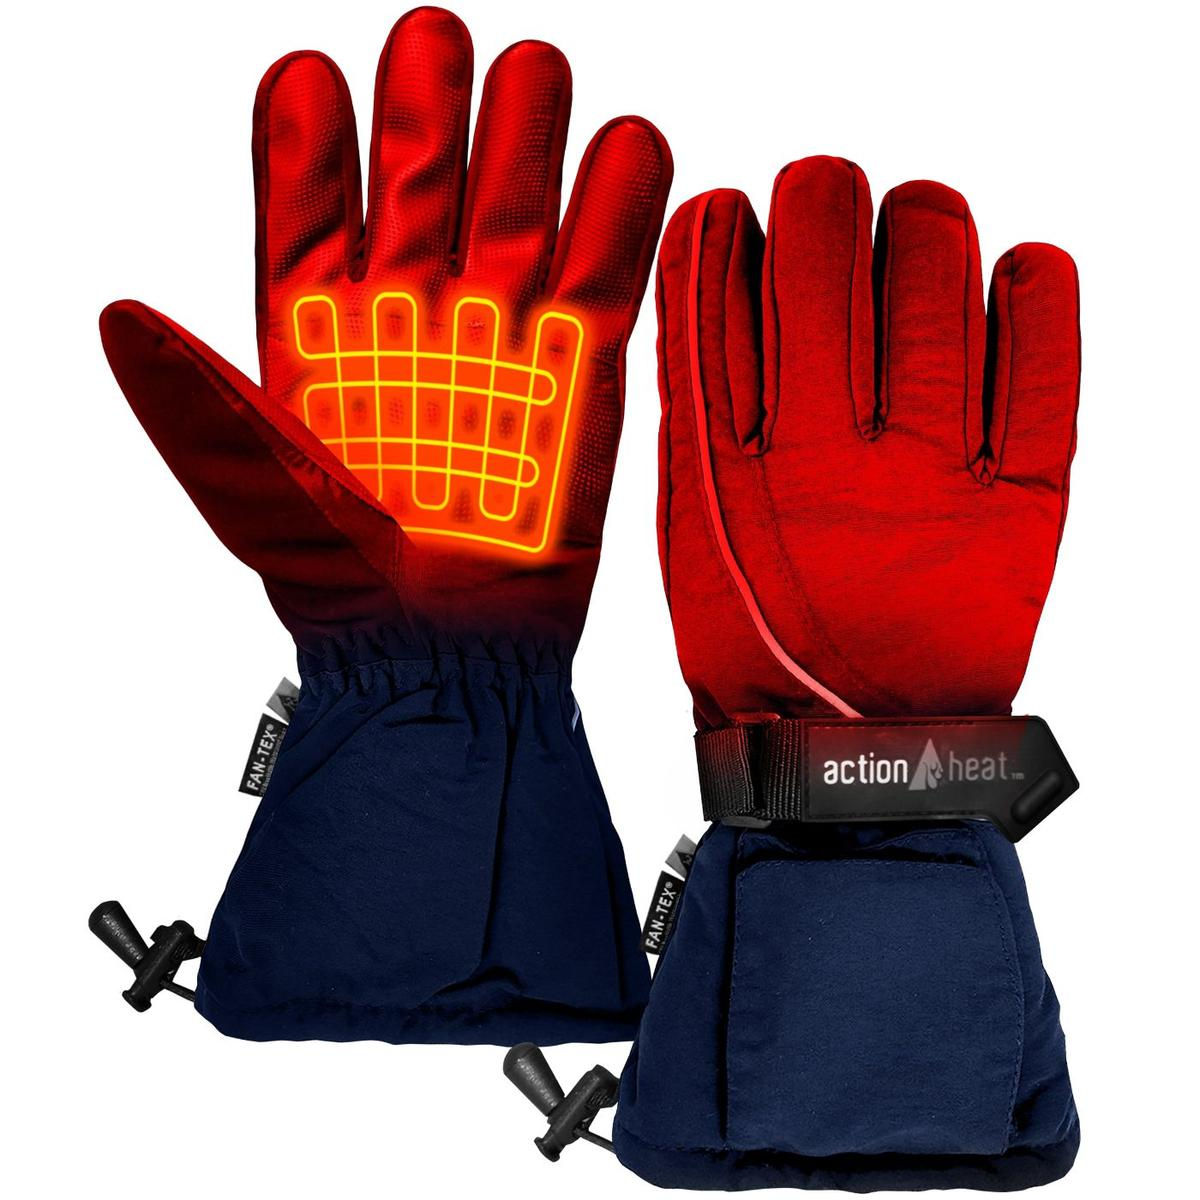 ActionHeat AA Battery Heated Gloves - Women's - Front